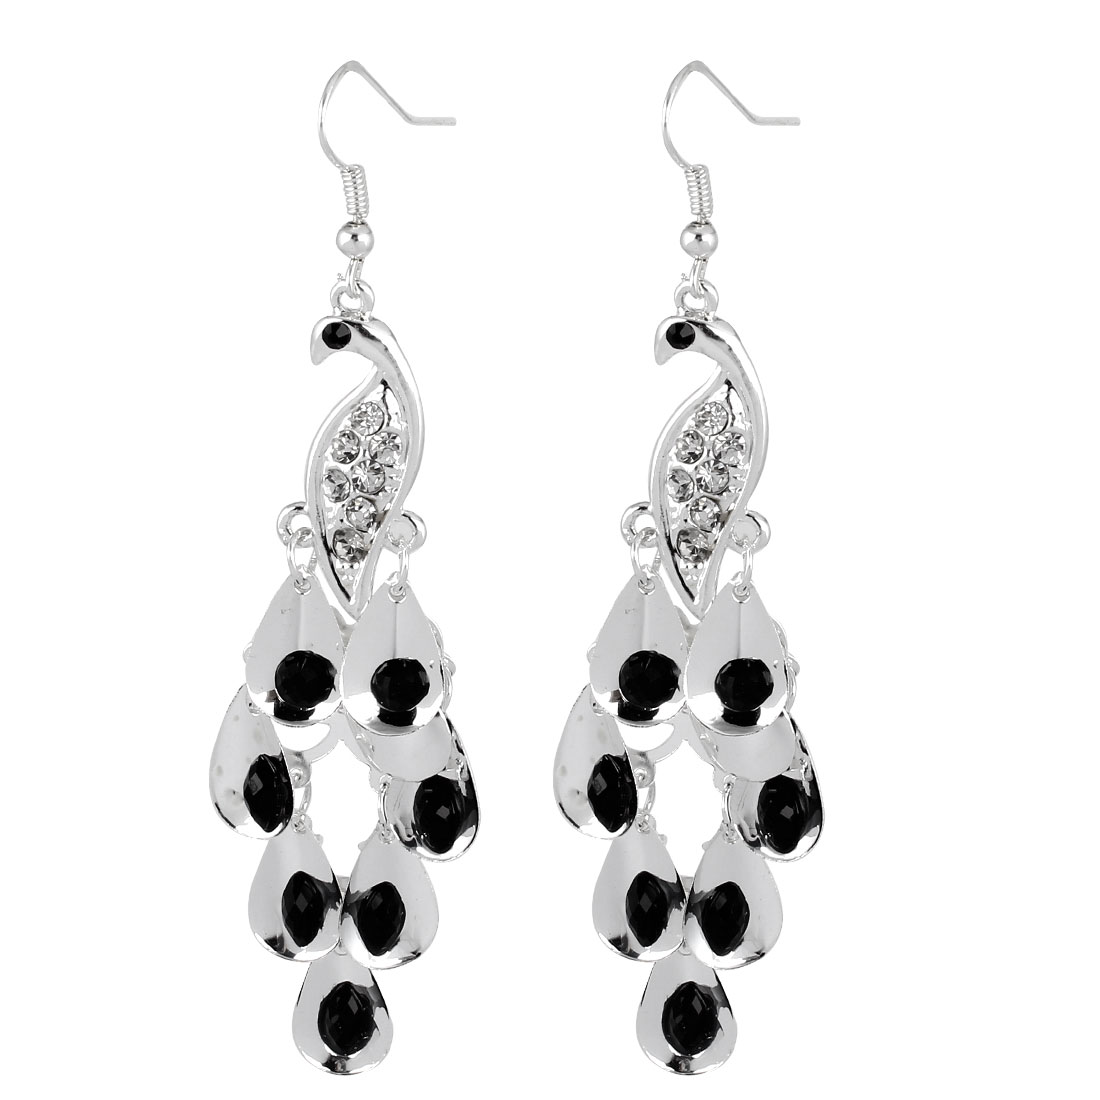 Black Faceted Beads Accent Peacock Shape Pendant Hook Earrings Silver Tone Pair for Lady